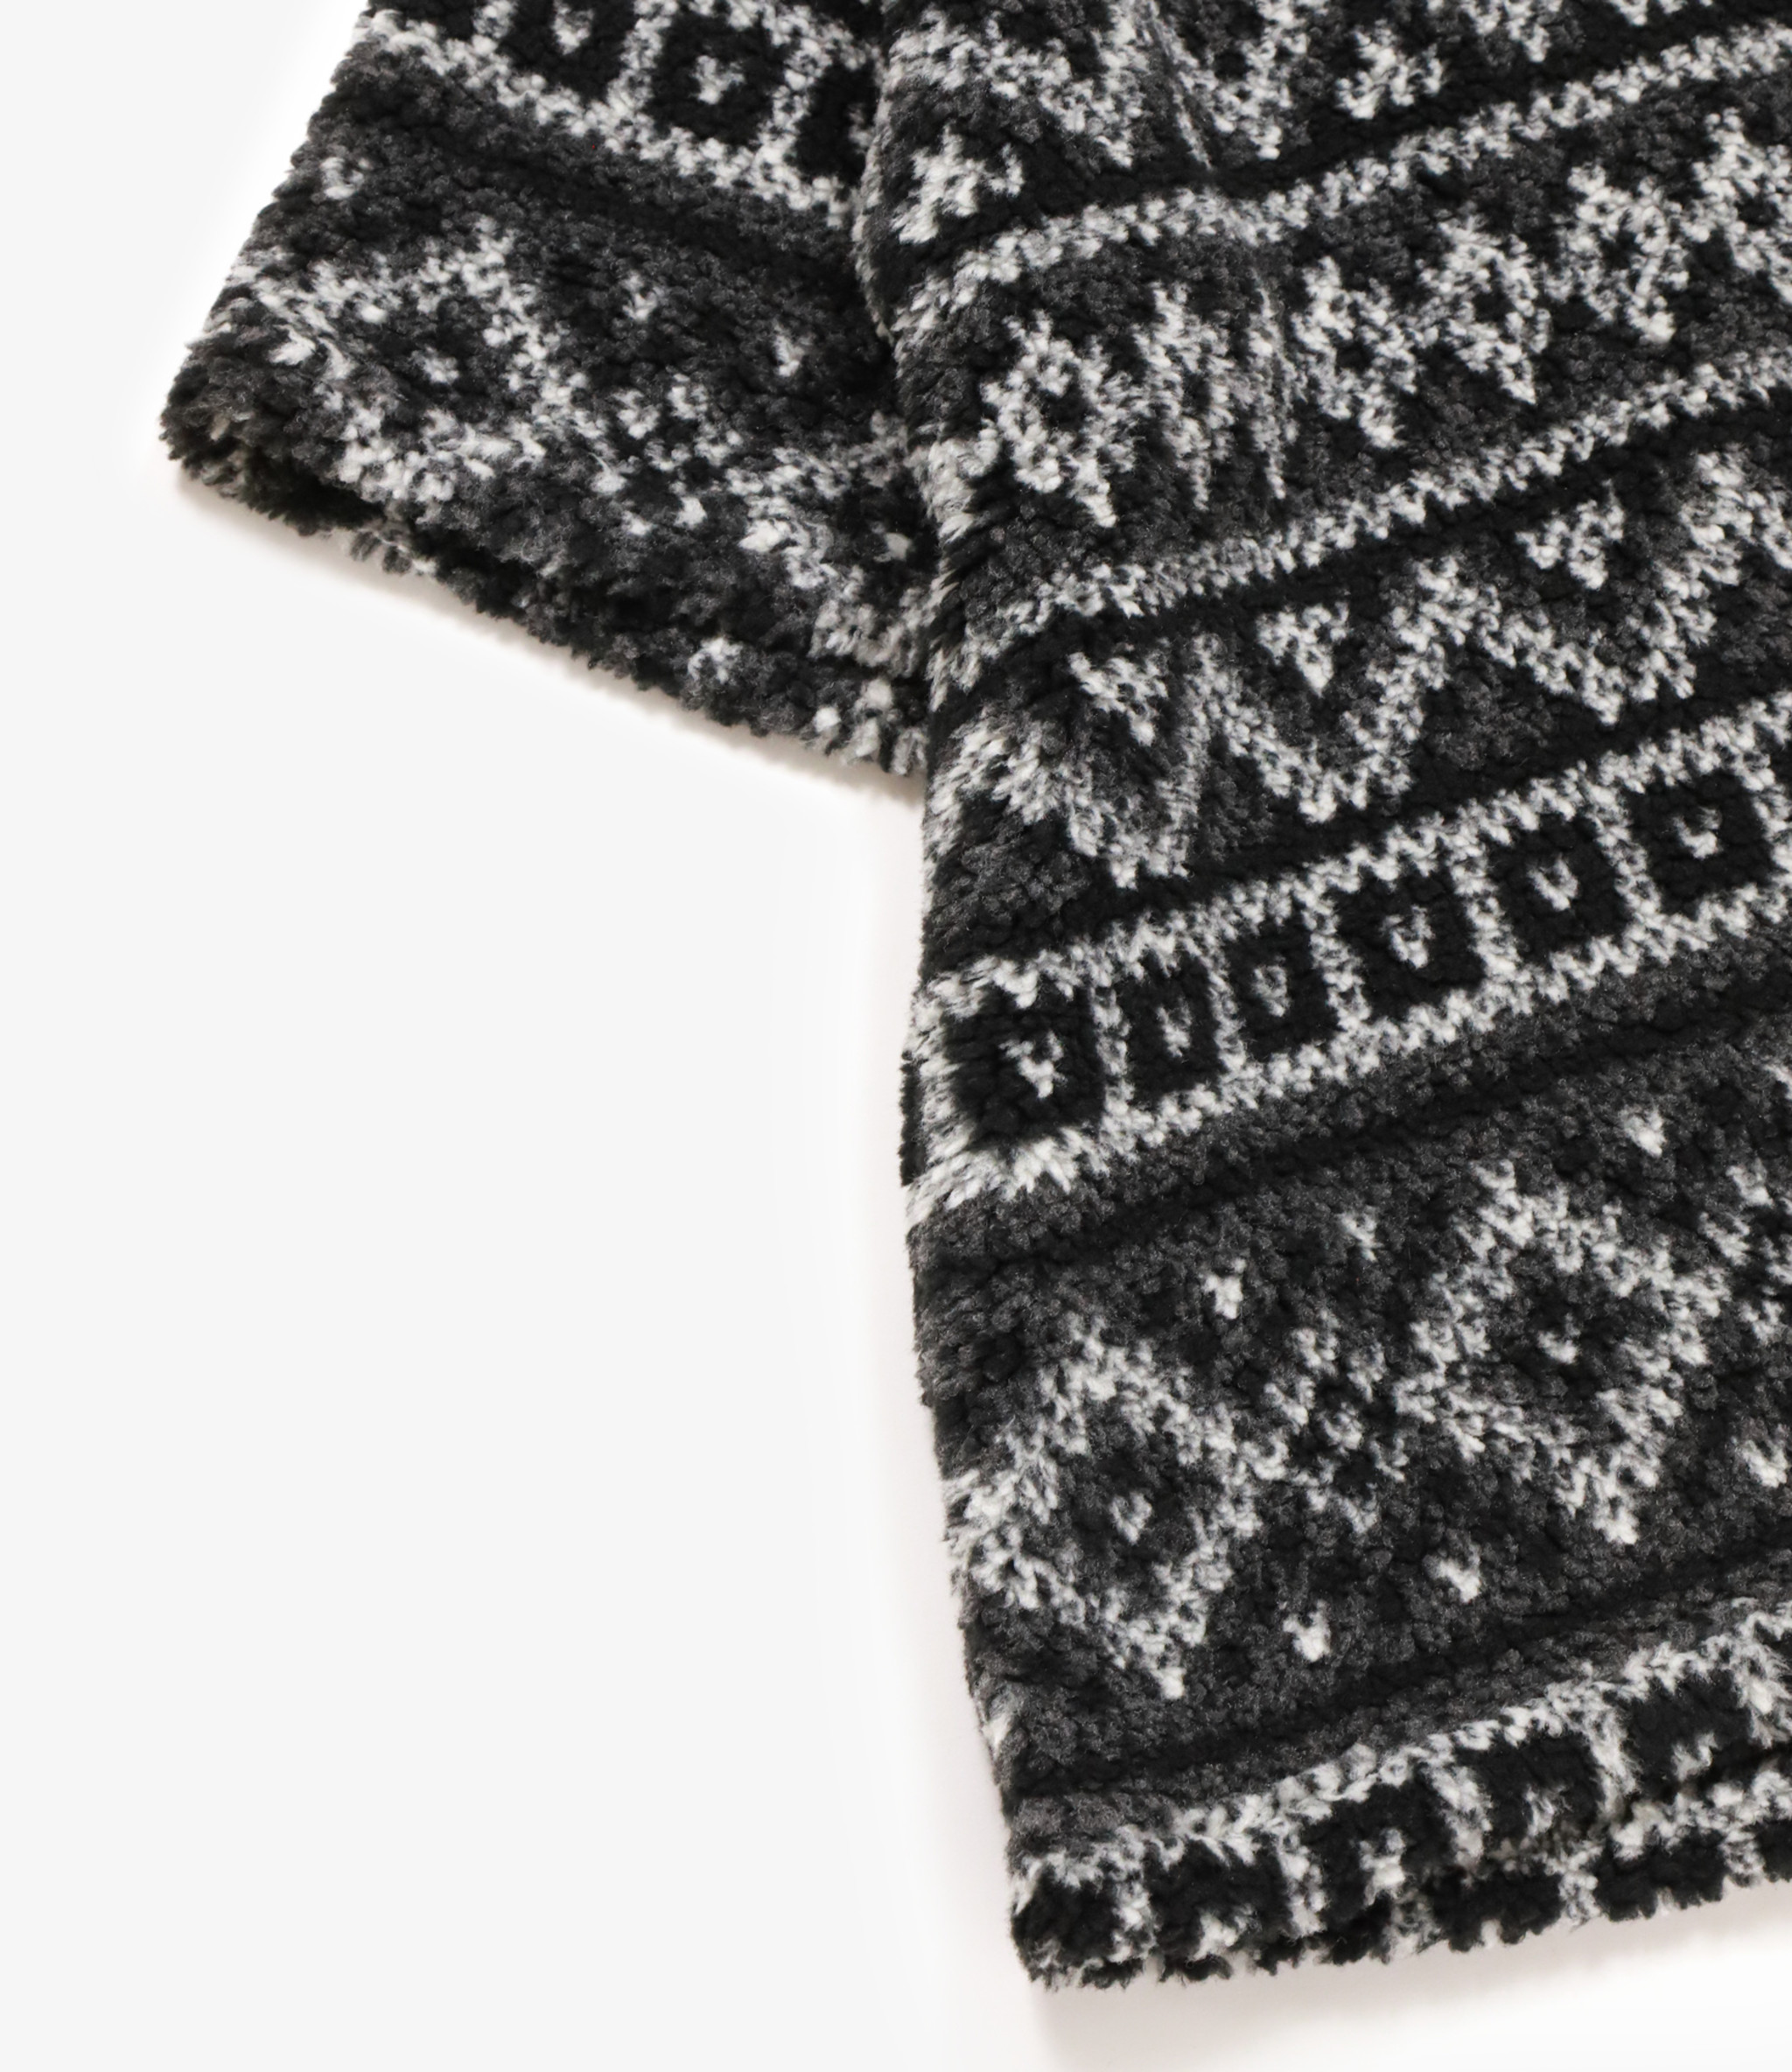 Engineered Garments U Neck Popover - Black/Grey Poly Acrylic Fair Isle Sweater Knit